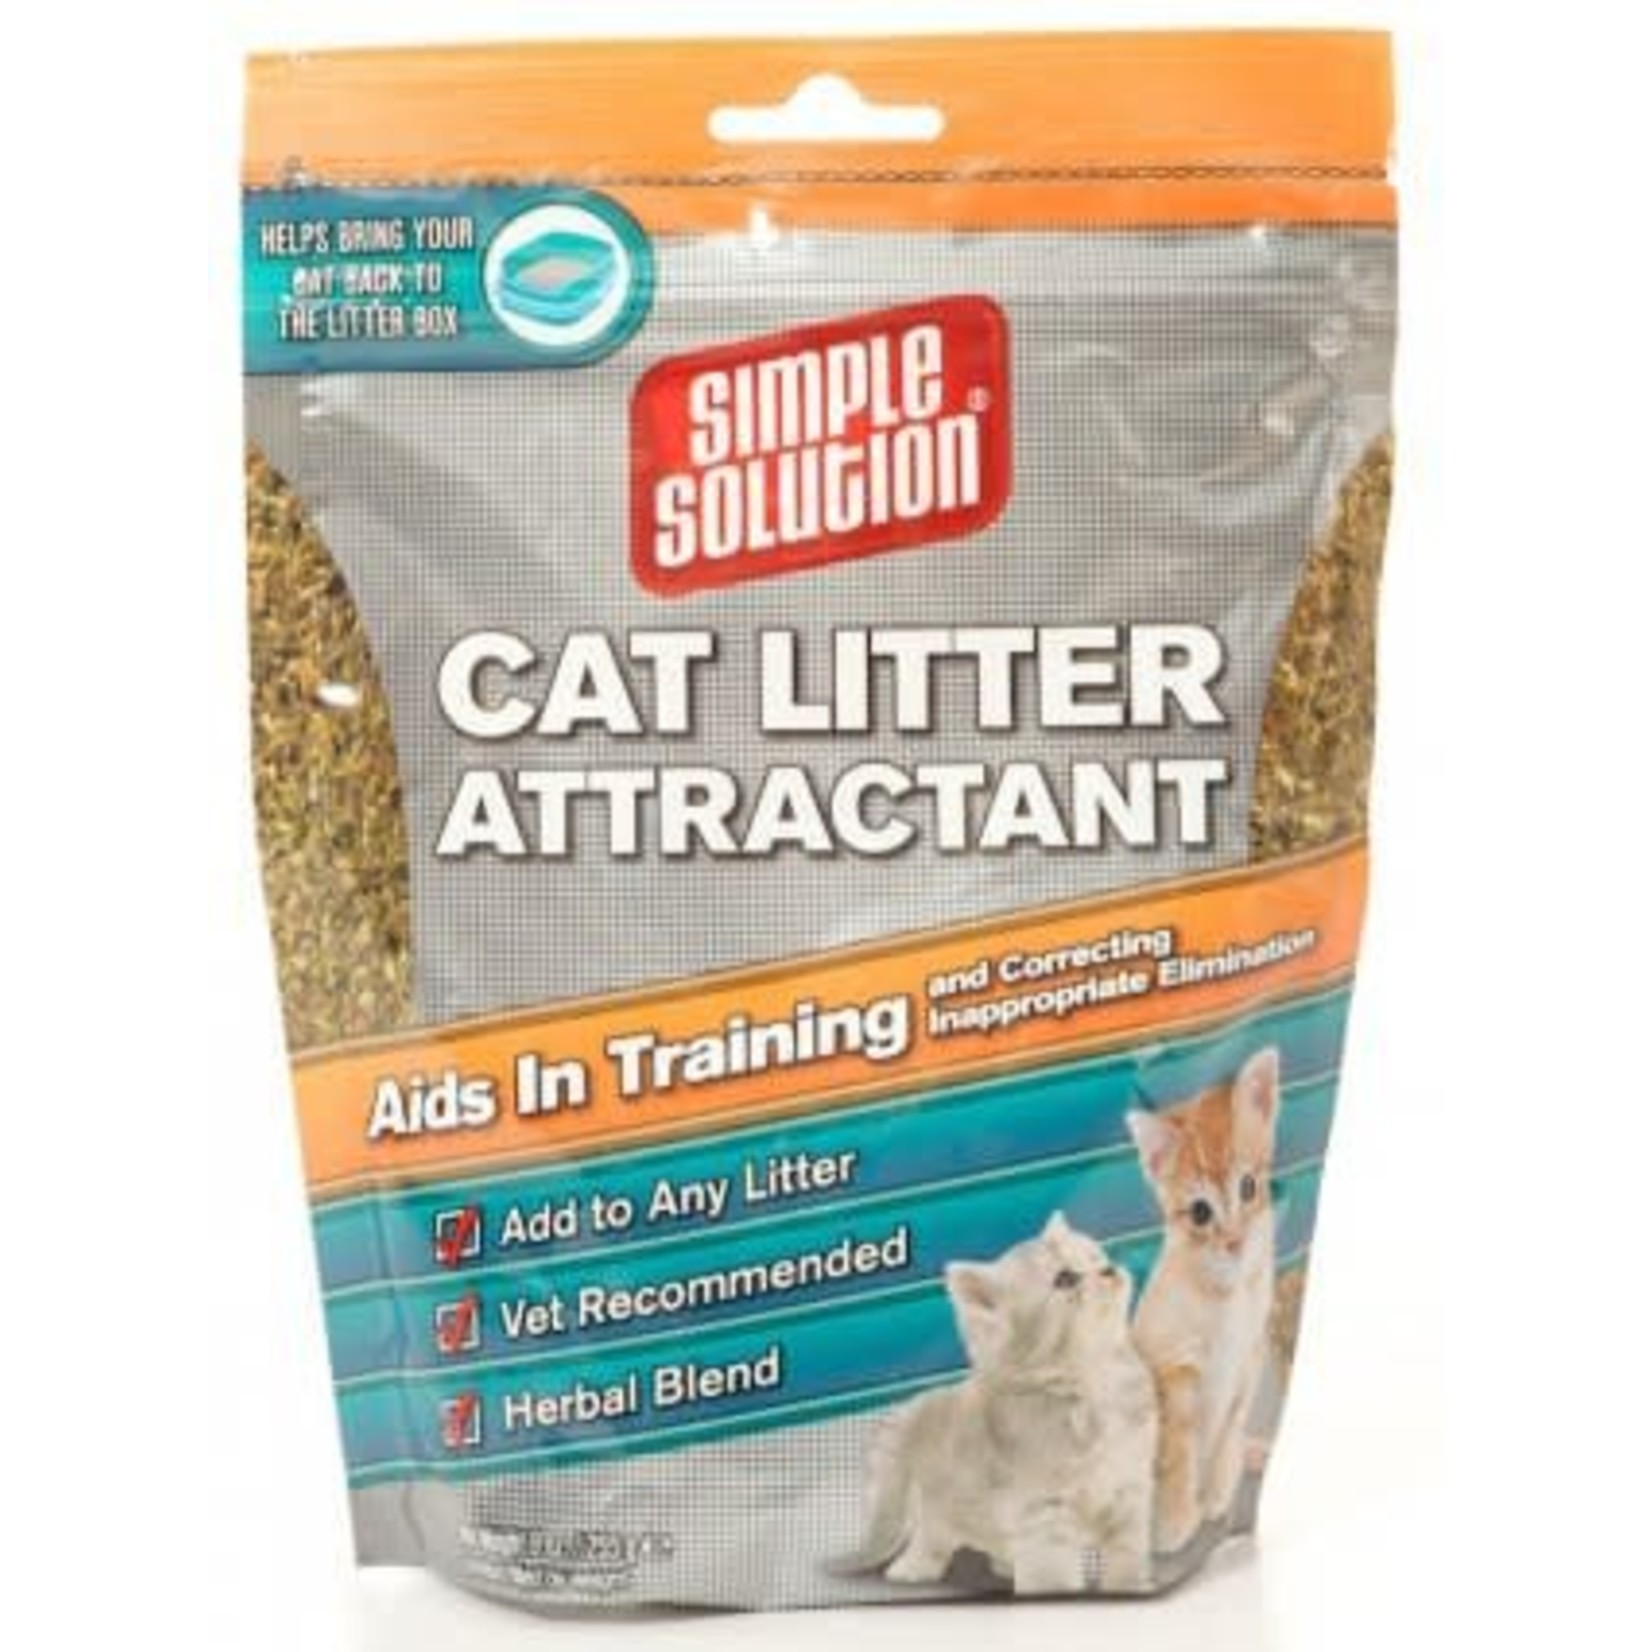 Simple Solution Cat Litter Attractant, 255g